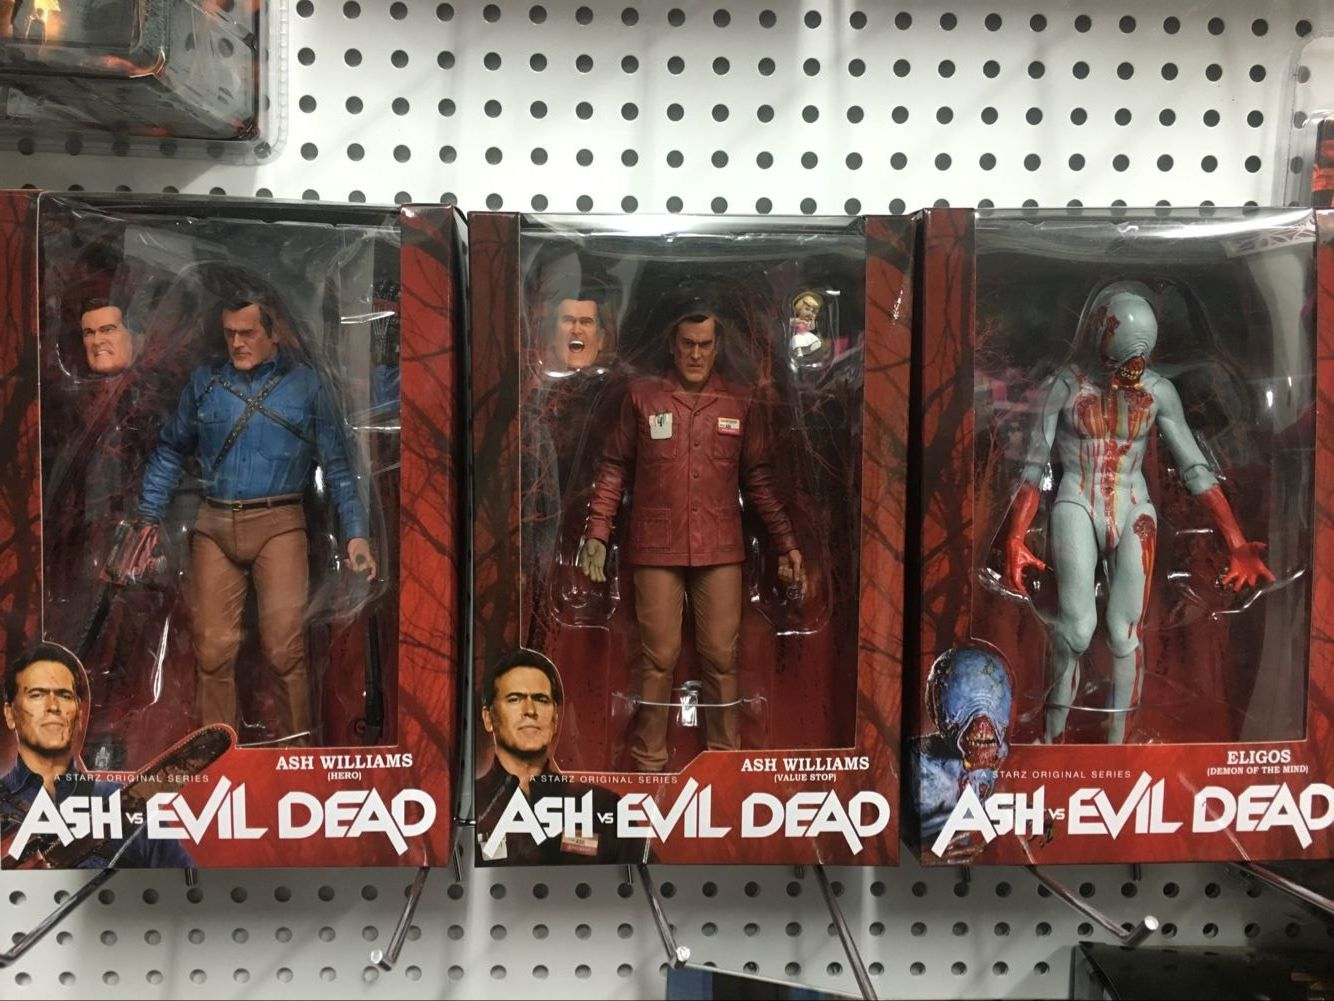 NECA The Evil Dead Ash Vs Evil Dead Ash Williams Eligos 3 pcs/set PVC Action Figure Collectible Model Toy 18cm KT3427 neca the texas chainsaw massacre pvc action figure collectible model toy 18cm 7 kt3703